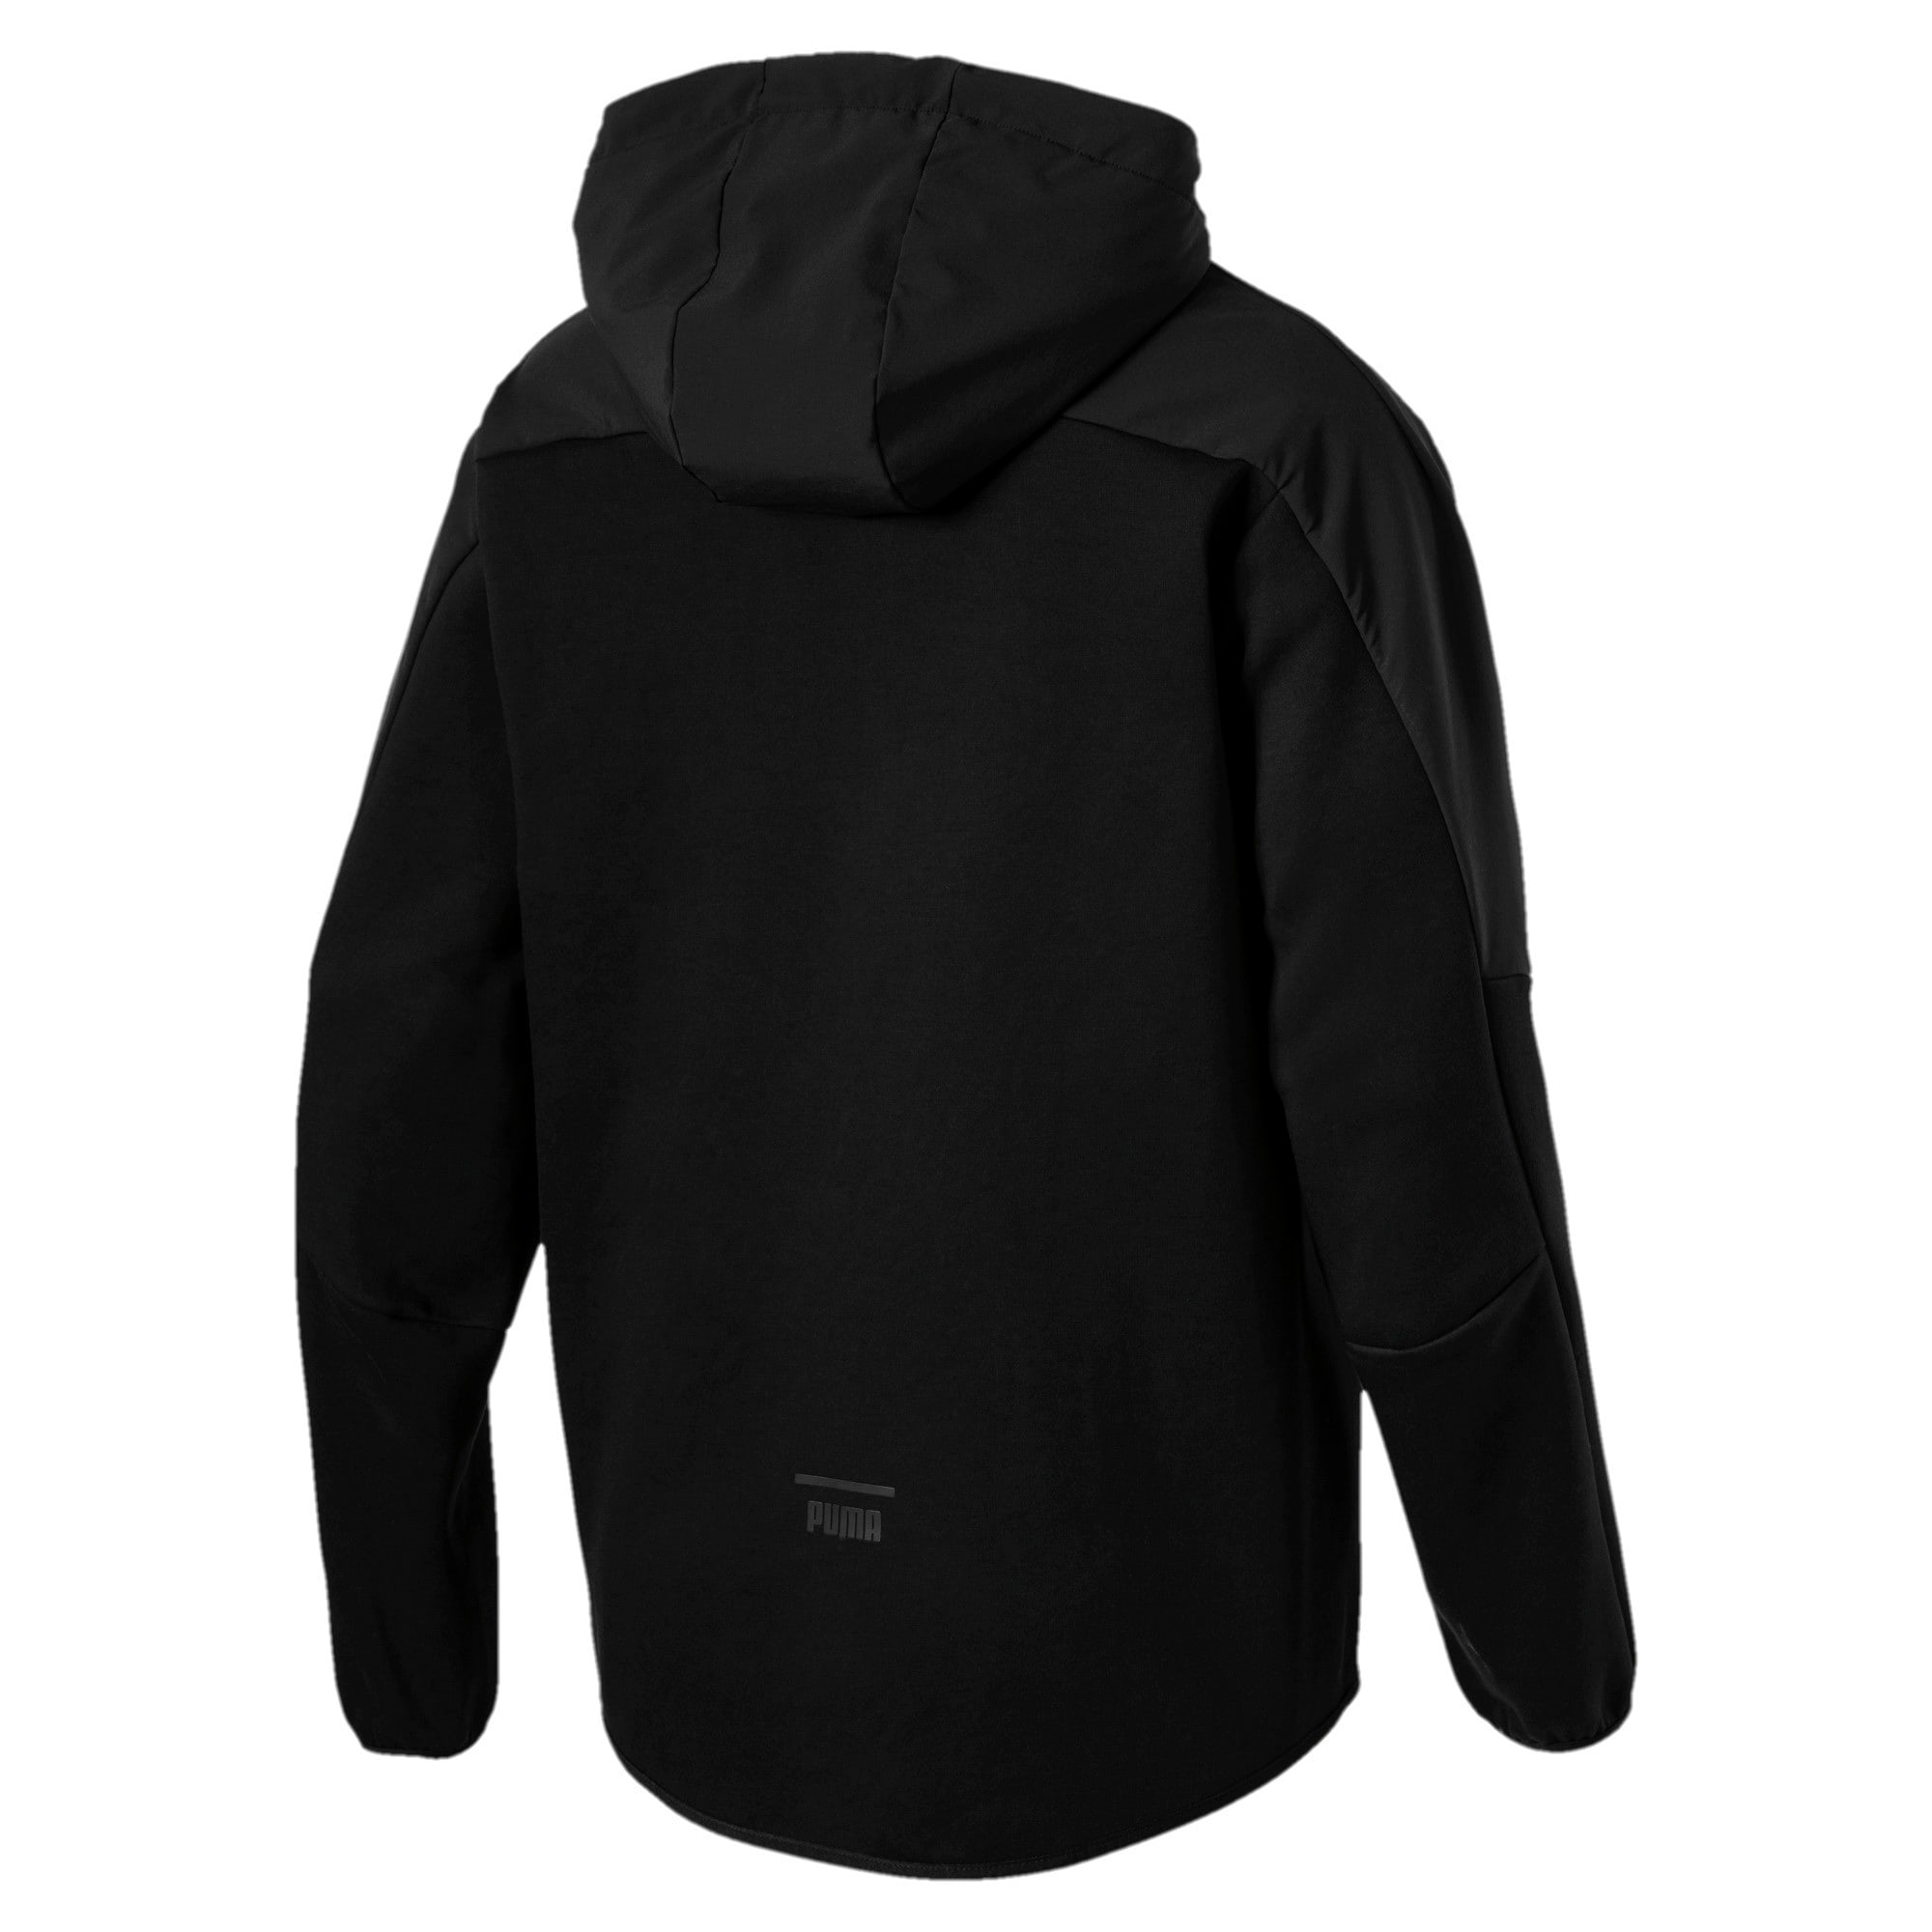 Thumbnail 3 of Pace LAB Men's Full Zip Hoodie, Puma Black, medium